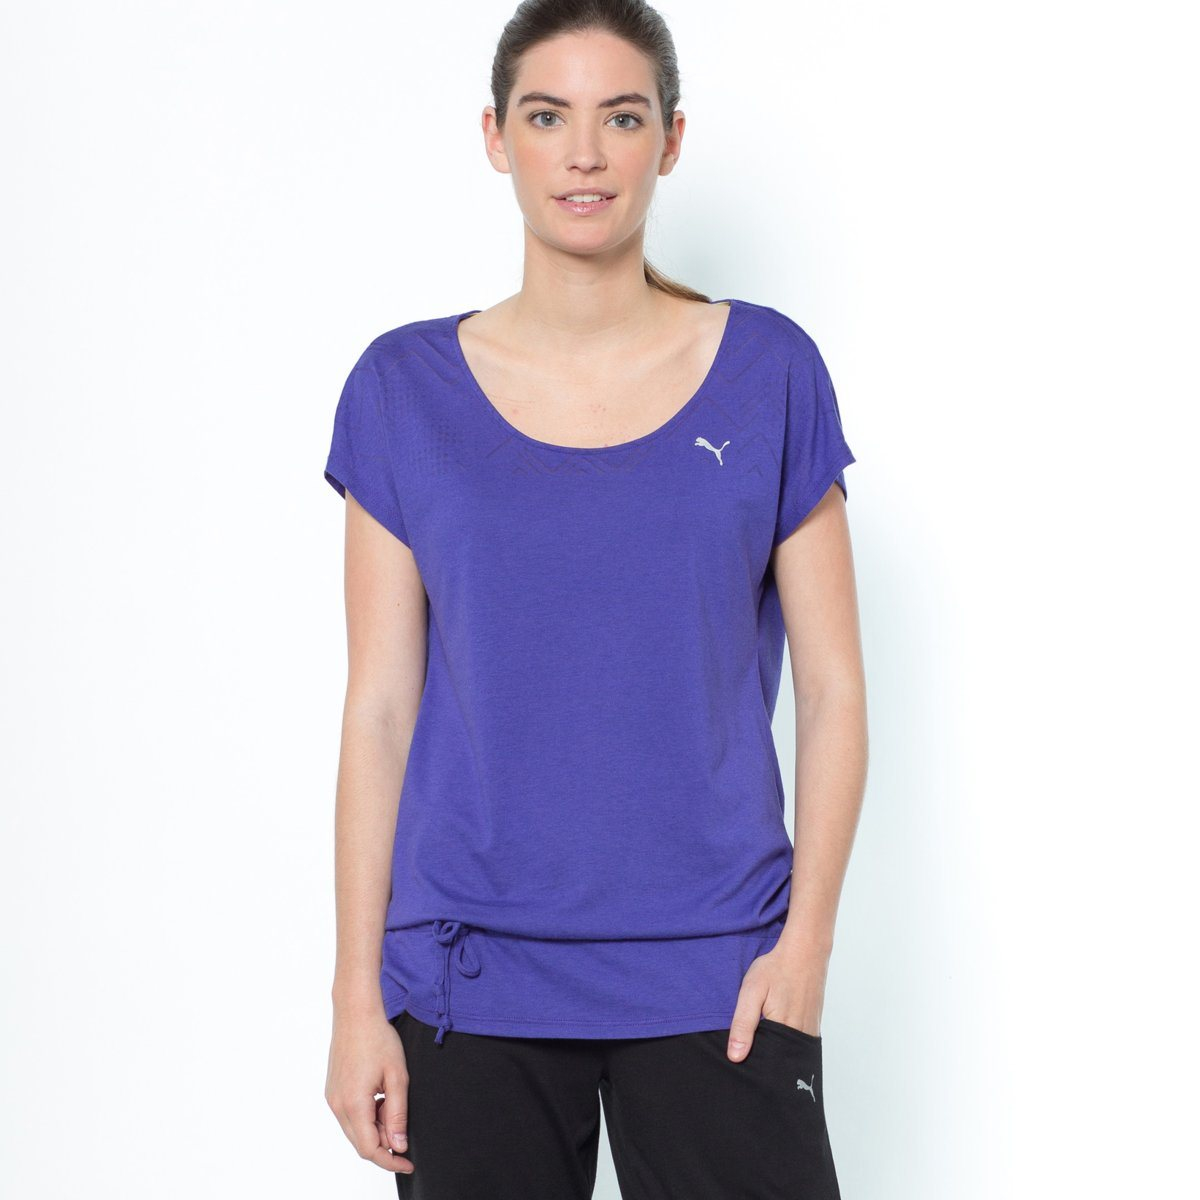 Short Sleeve Henley Tunic Top. Cute and easy to pair with your favorite jeans this Short Sleeve Henley Tunic Top comes in 5 colors – Great for fall!. Order HERE —-> Women's Short Sleeve Henley V Neck Pleated Button Details Tunic Shirt Top Material: 95% Rayon, 5% Spandex ; Imported ; Soft and comfortable fabric with stretch.